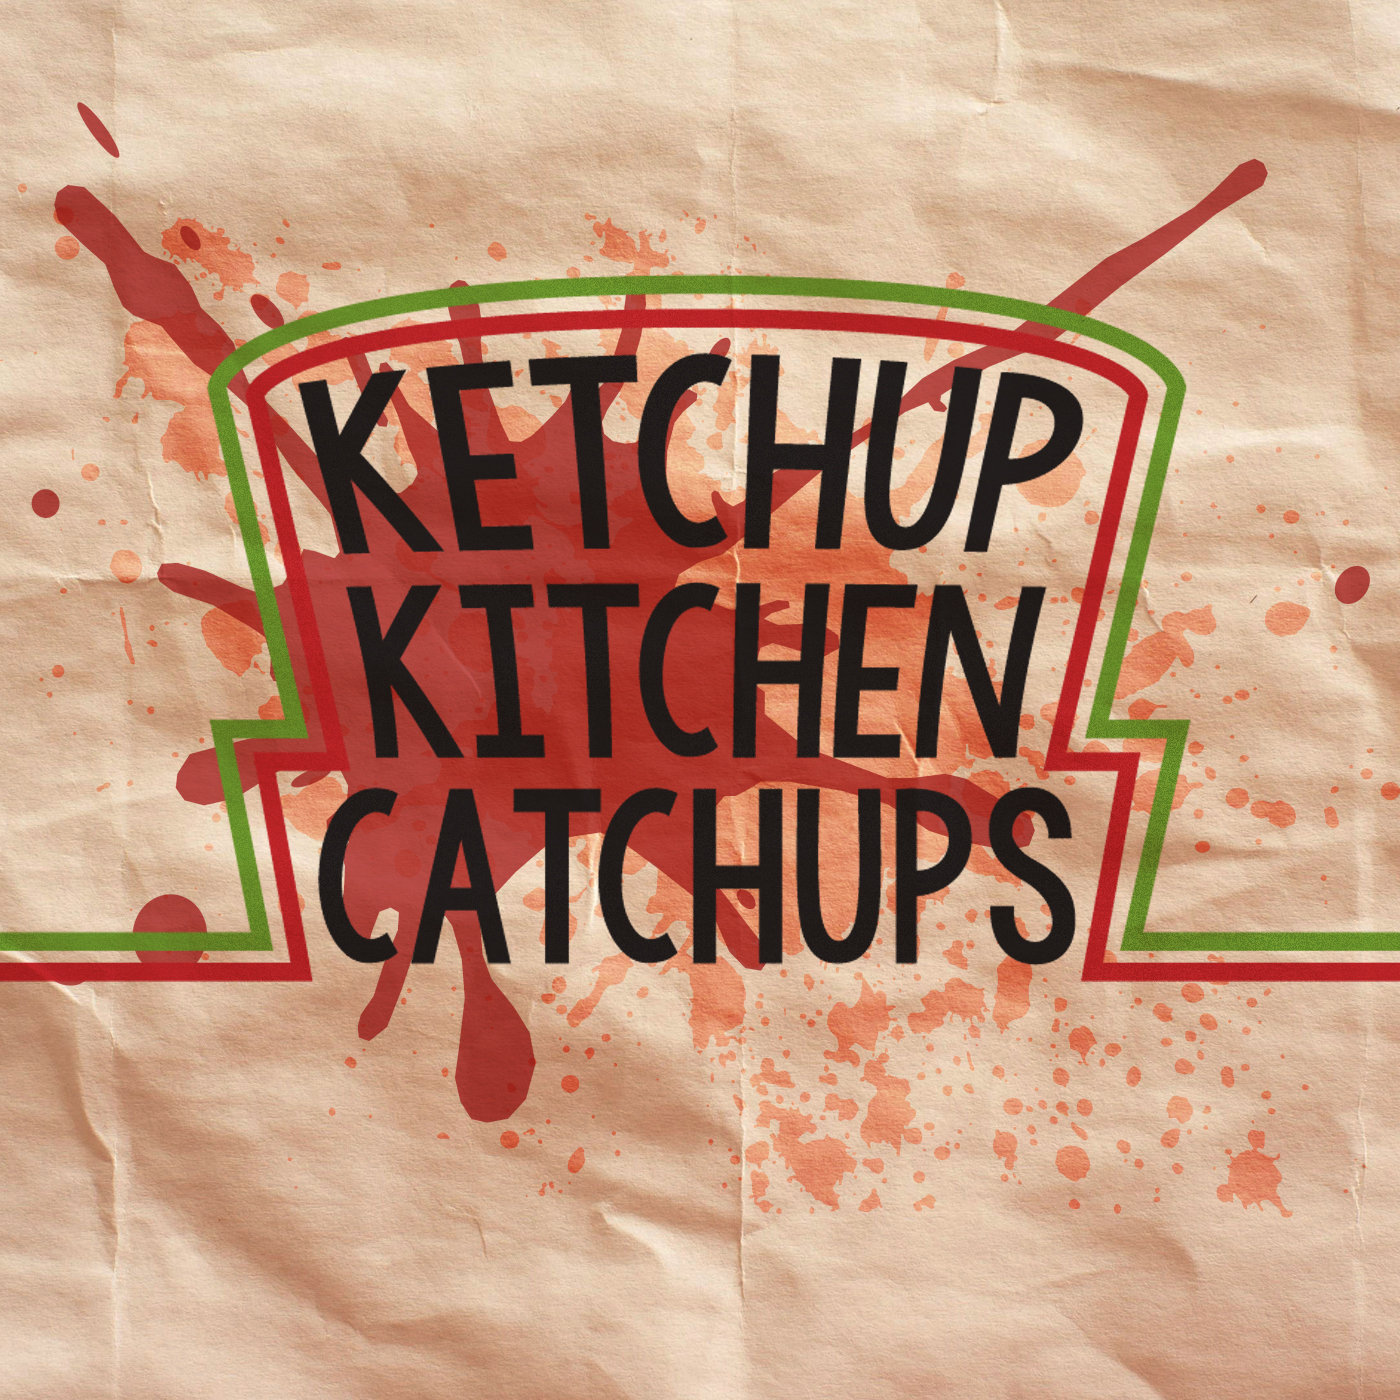 Ketchup Kitchen Catchups